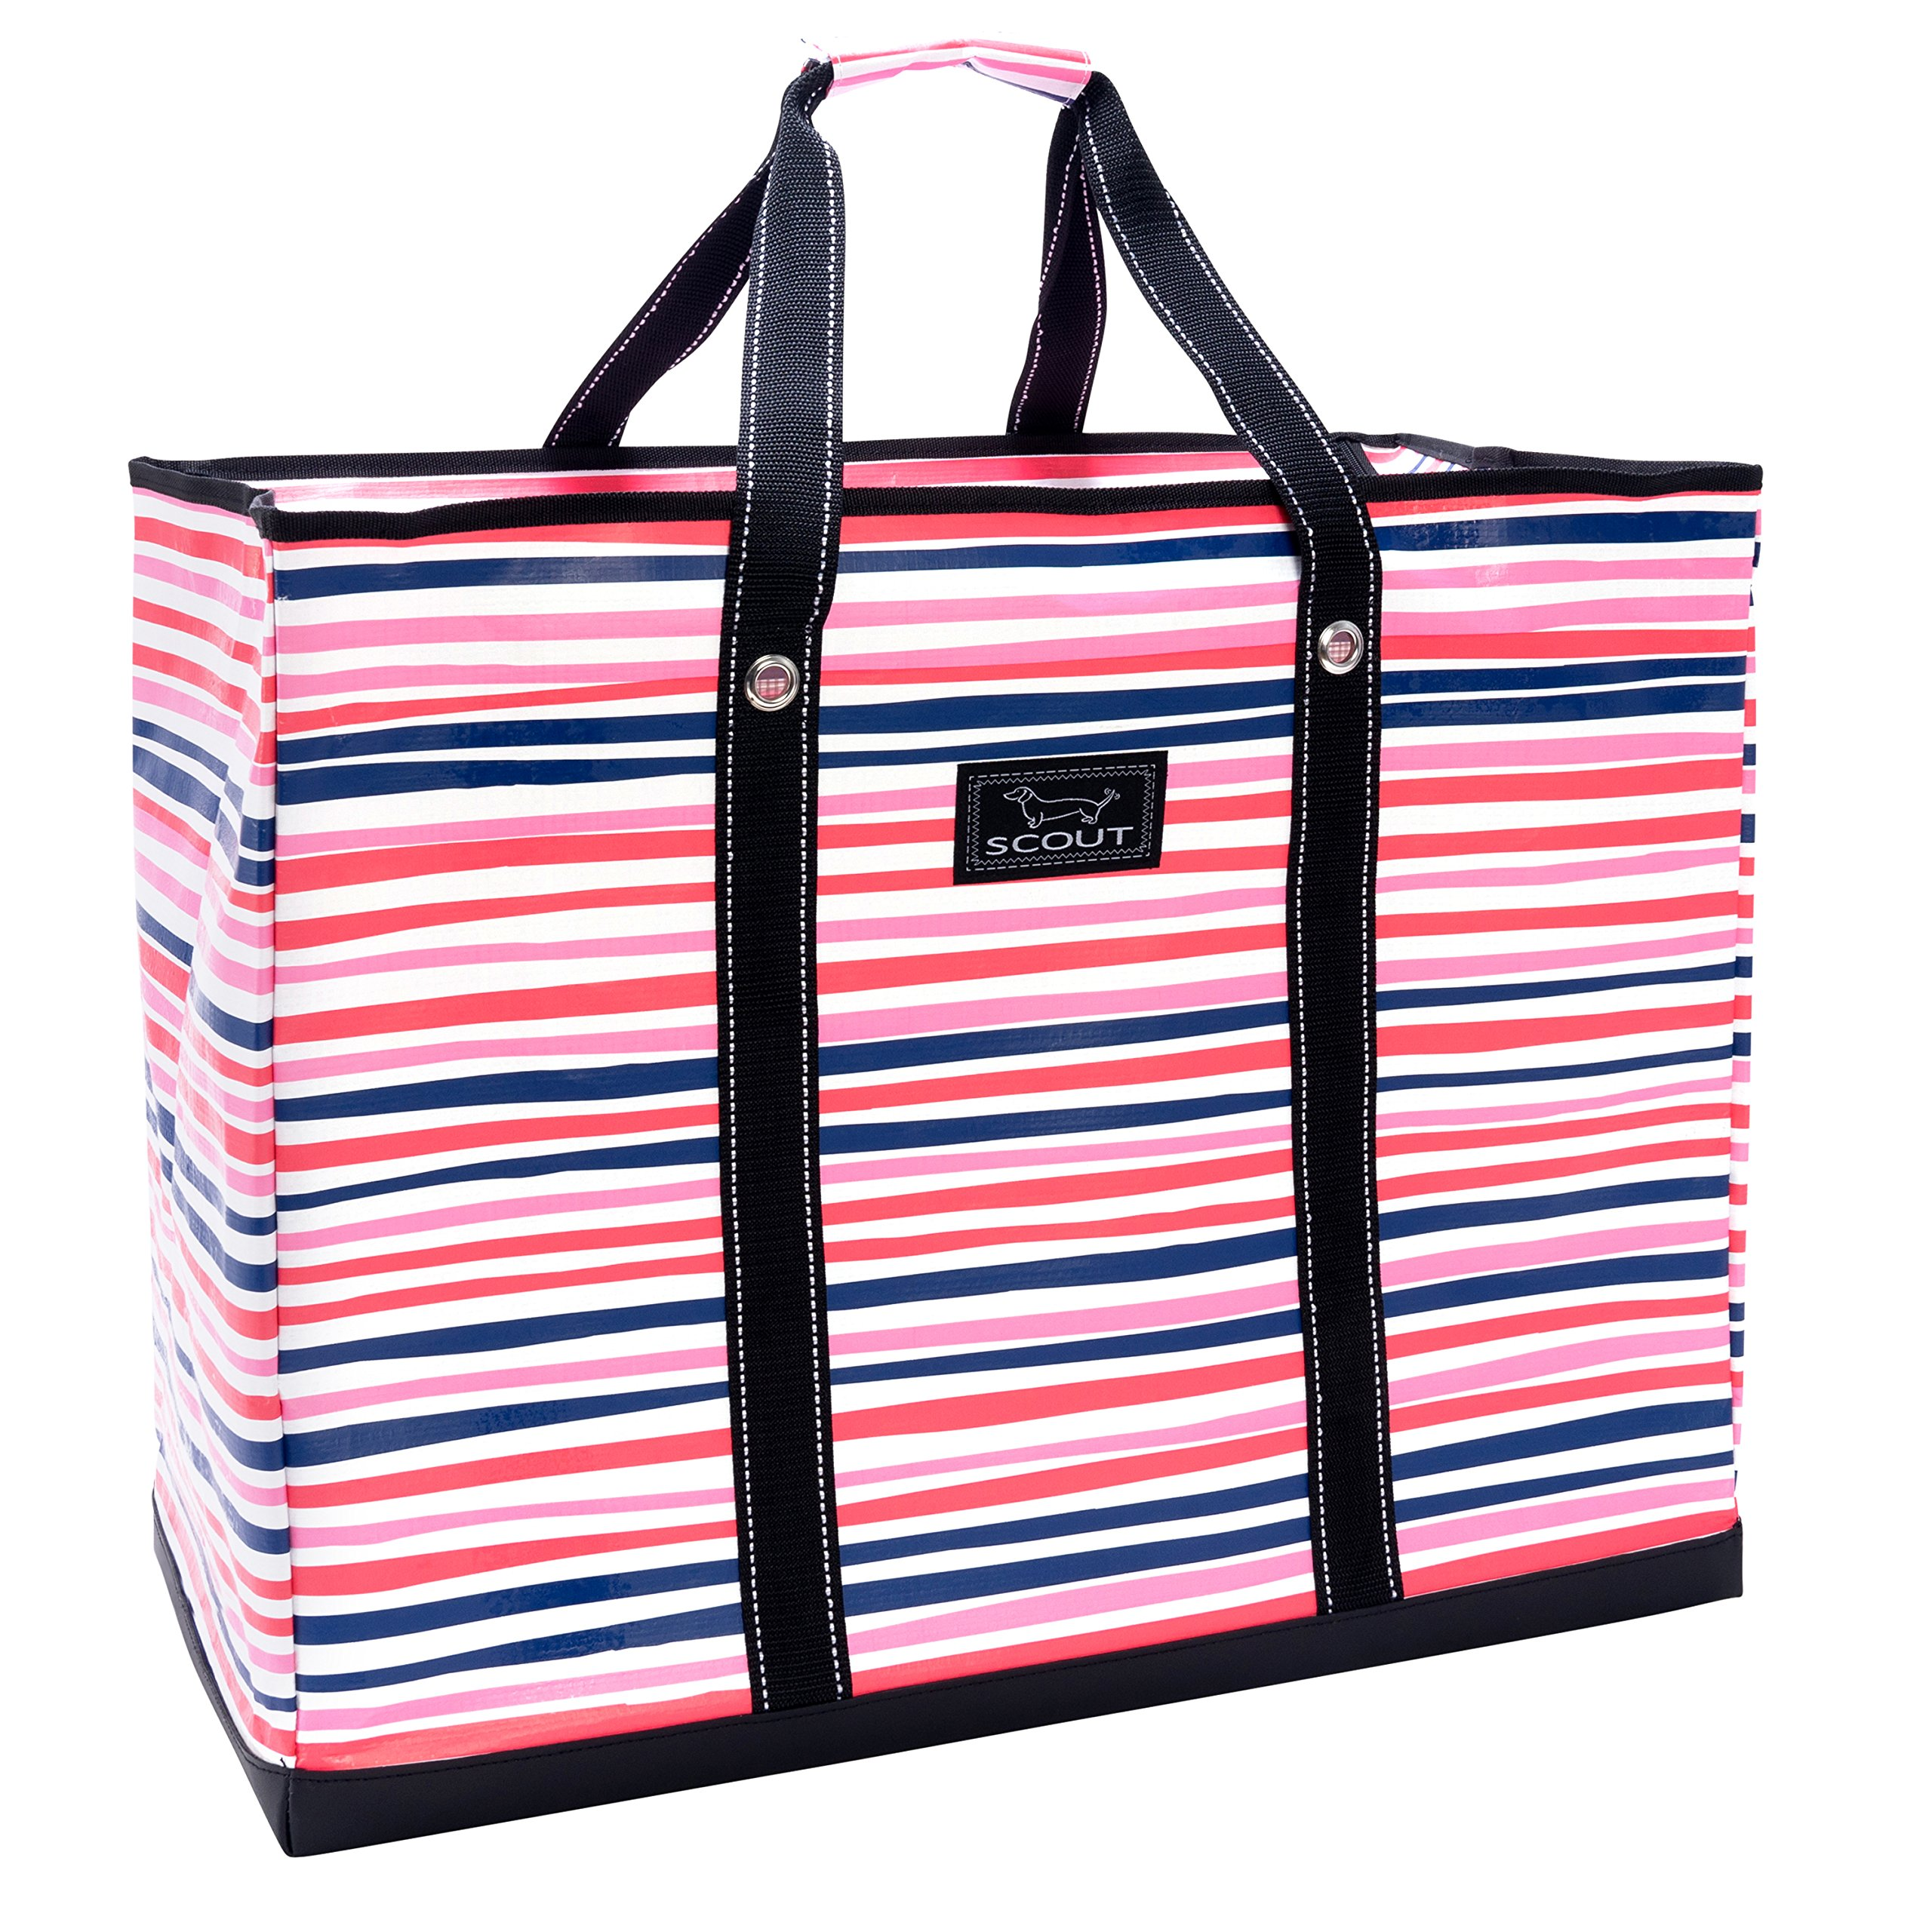 SCOUT 4 Boys Bag, Extra Large, Durable All Purpose Foldable Utility Tote, Folds Flat, Water Resistant, Zips Closed, Pinky Swear